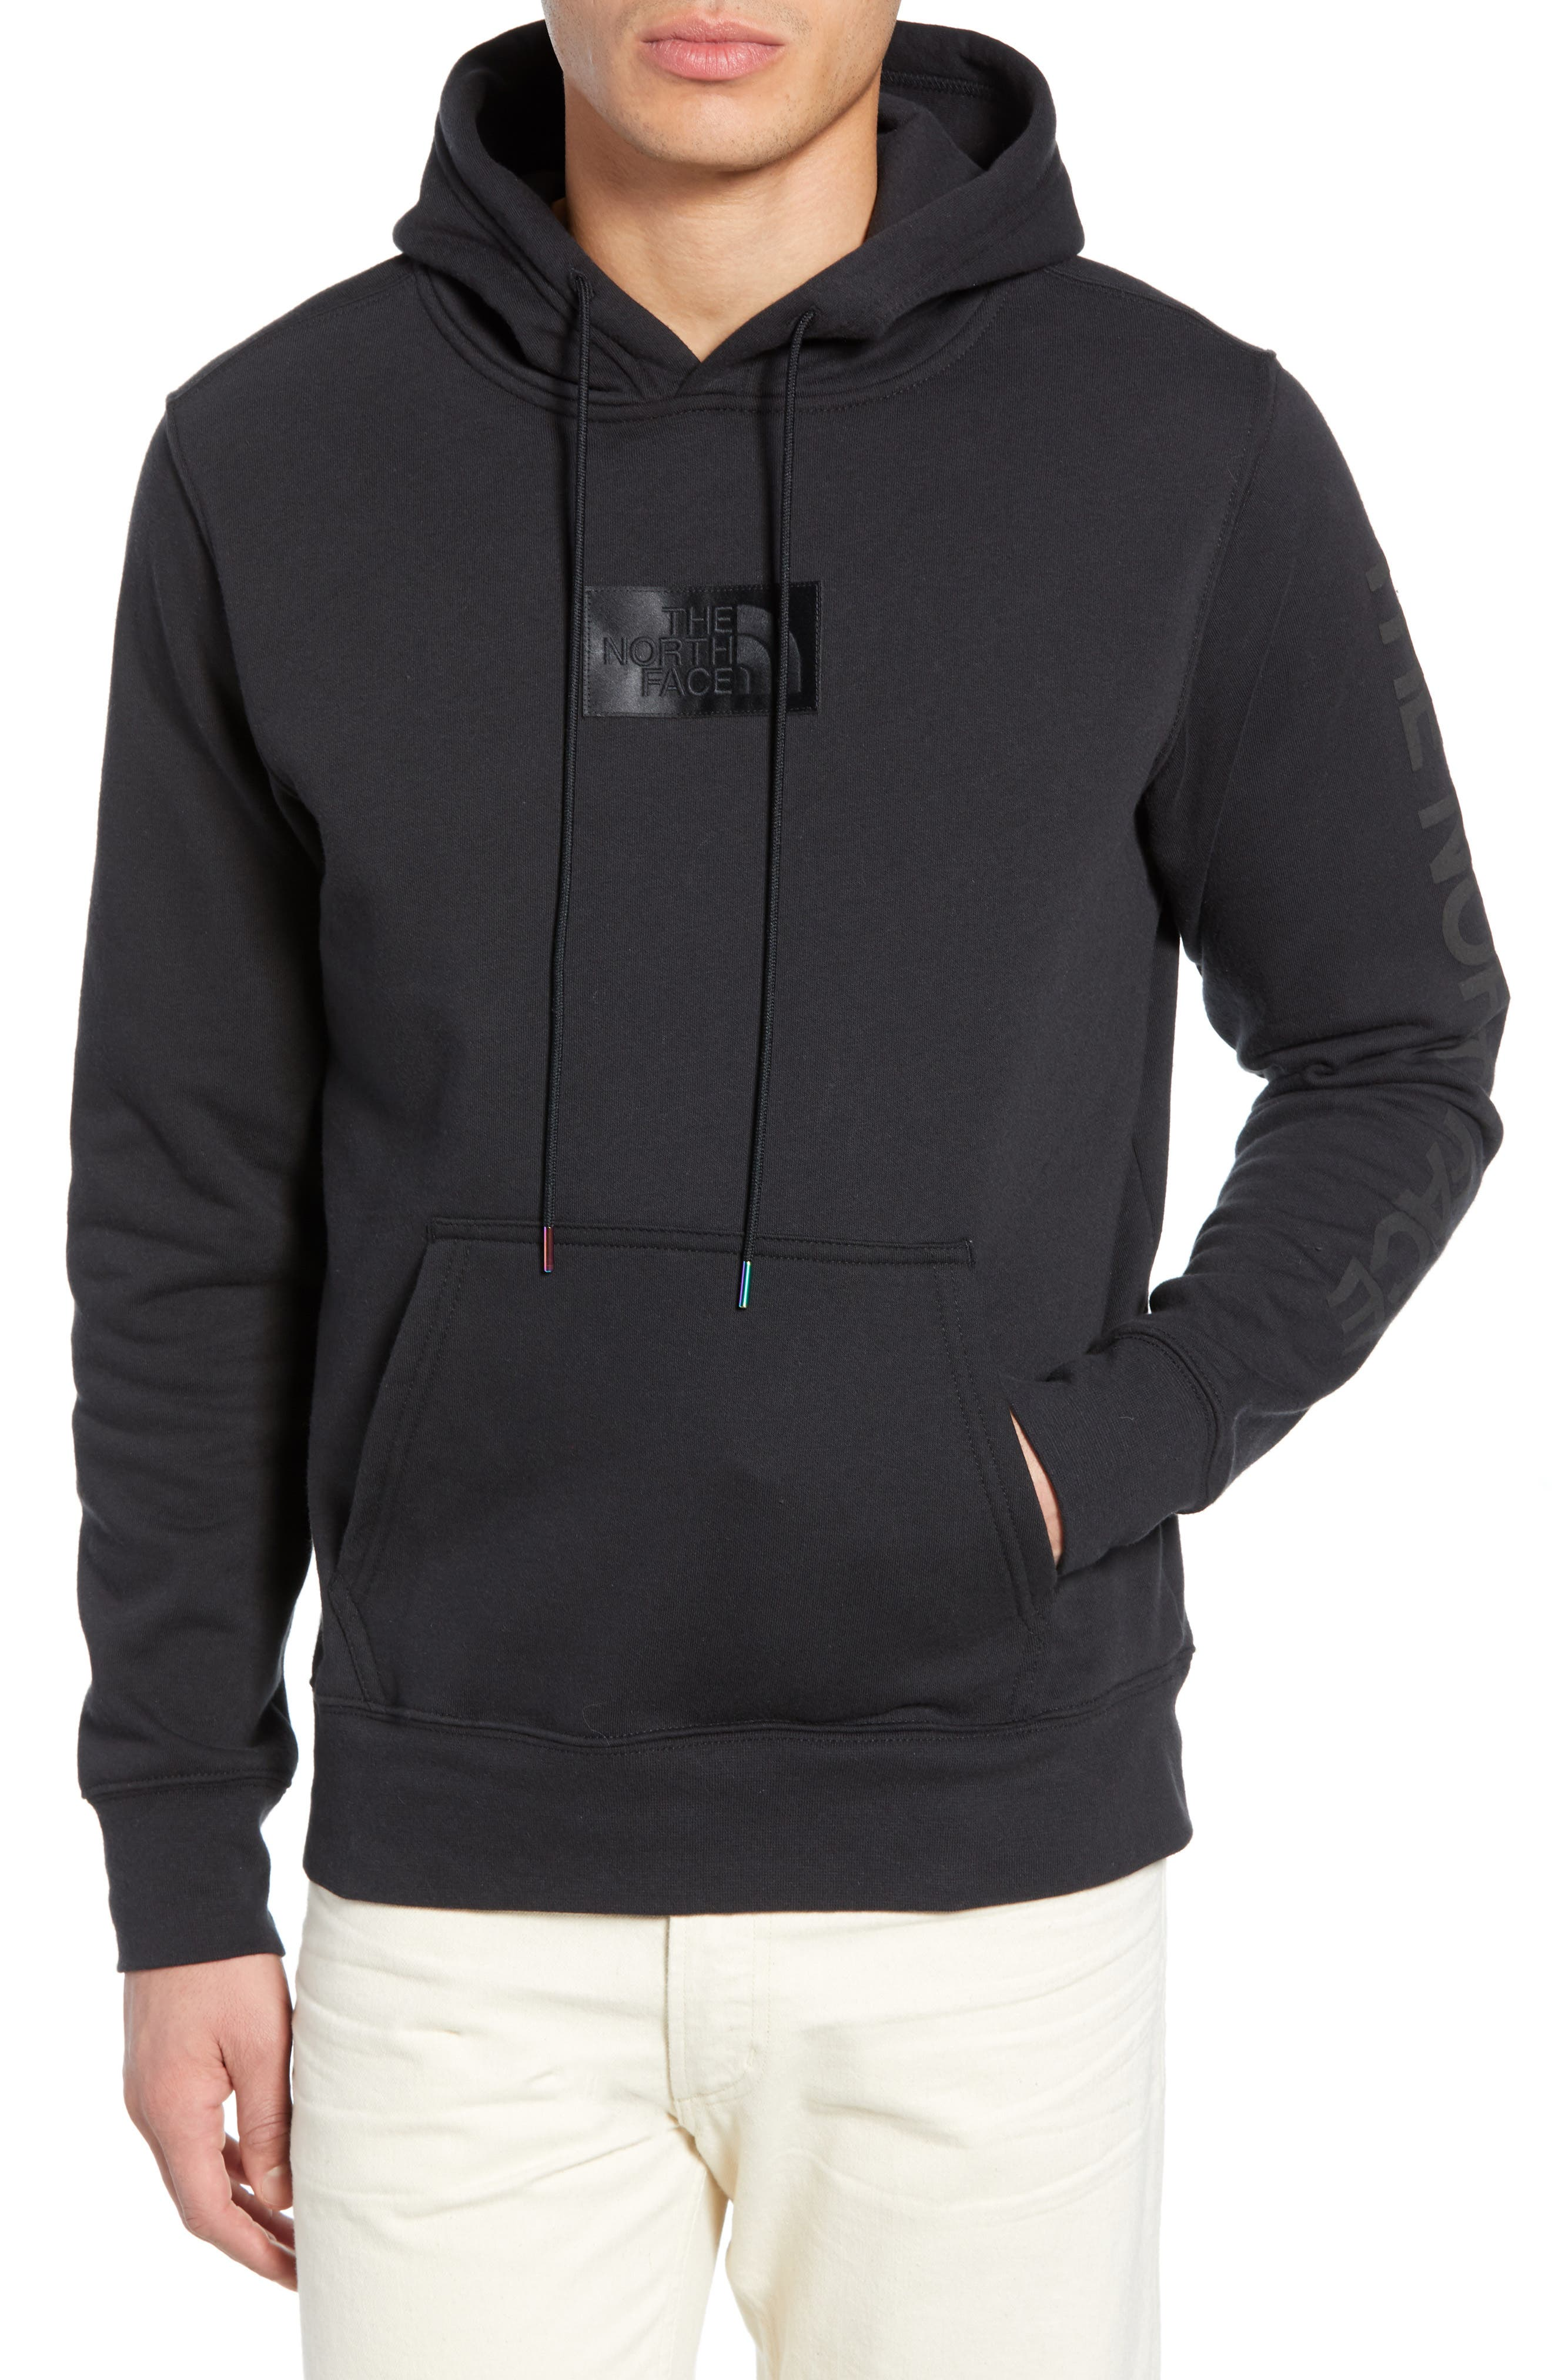 THE NORTH FACE, Urban Ex Collection Pullover Hoodie, Main thumbnail 1, color, TNF BLACK